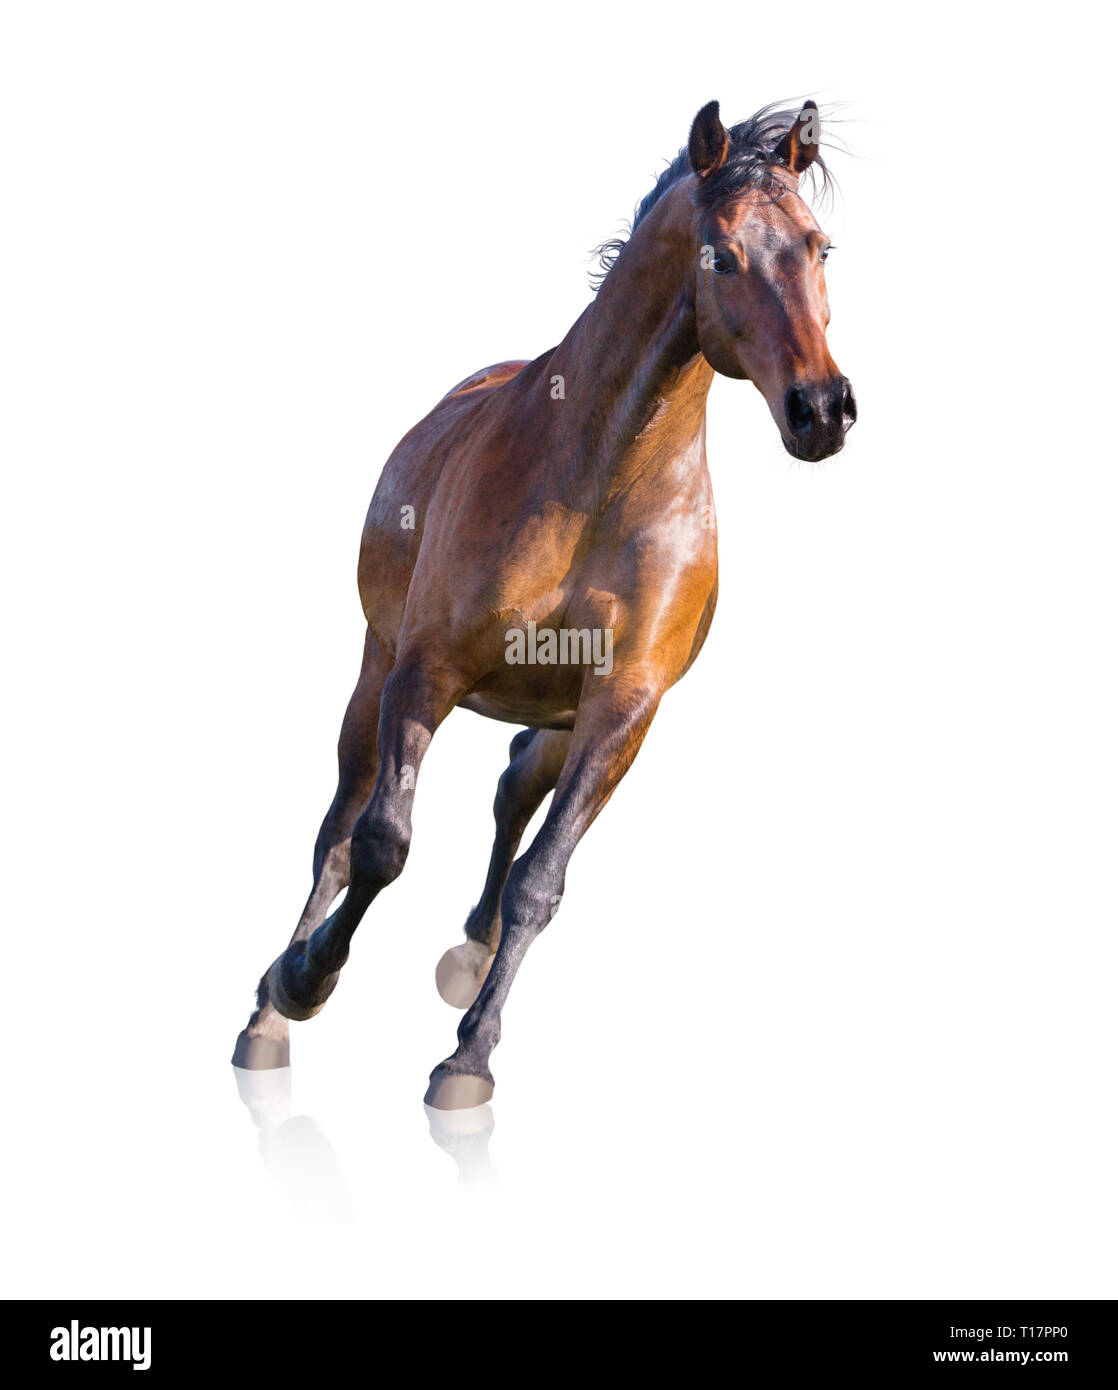 Brown horse runs isolated on white background - Stock Image